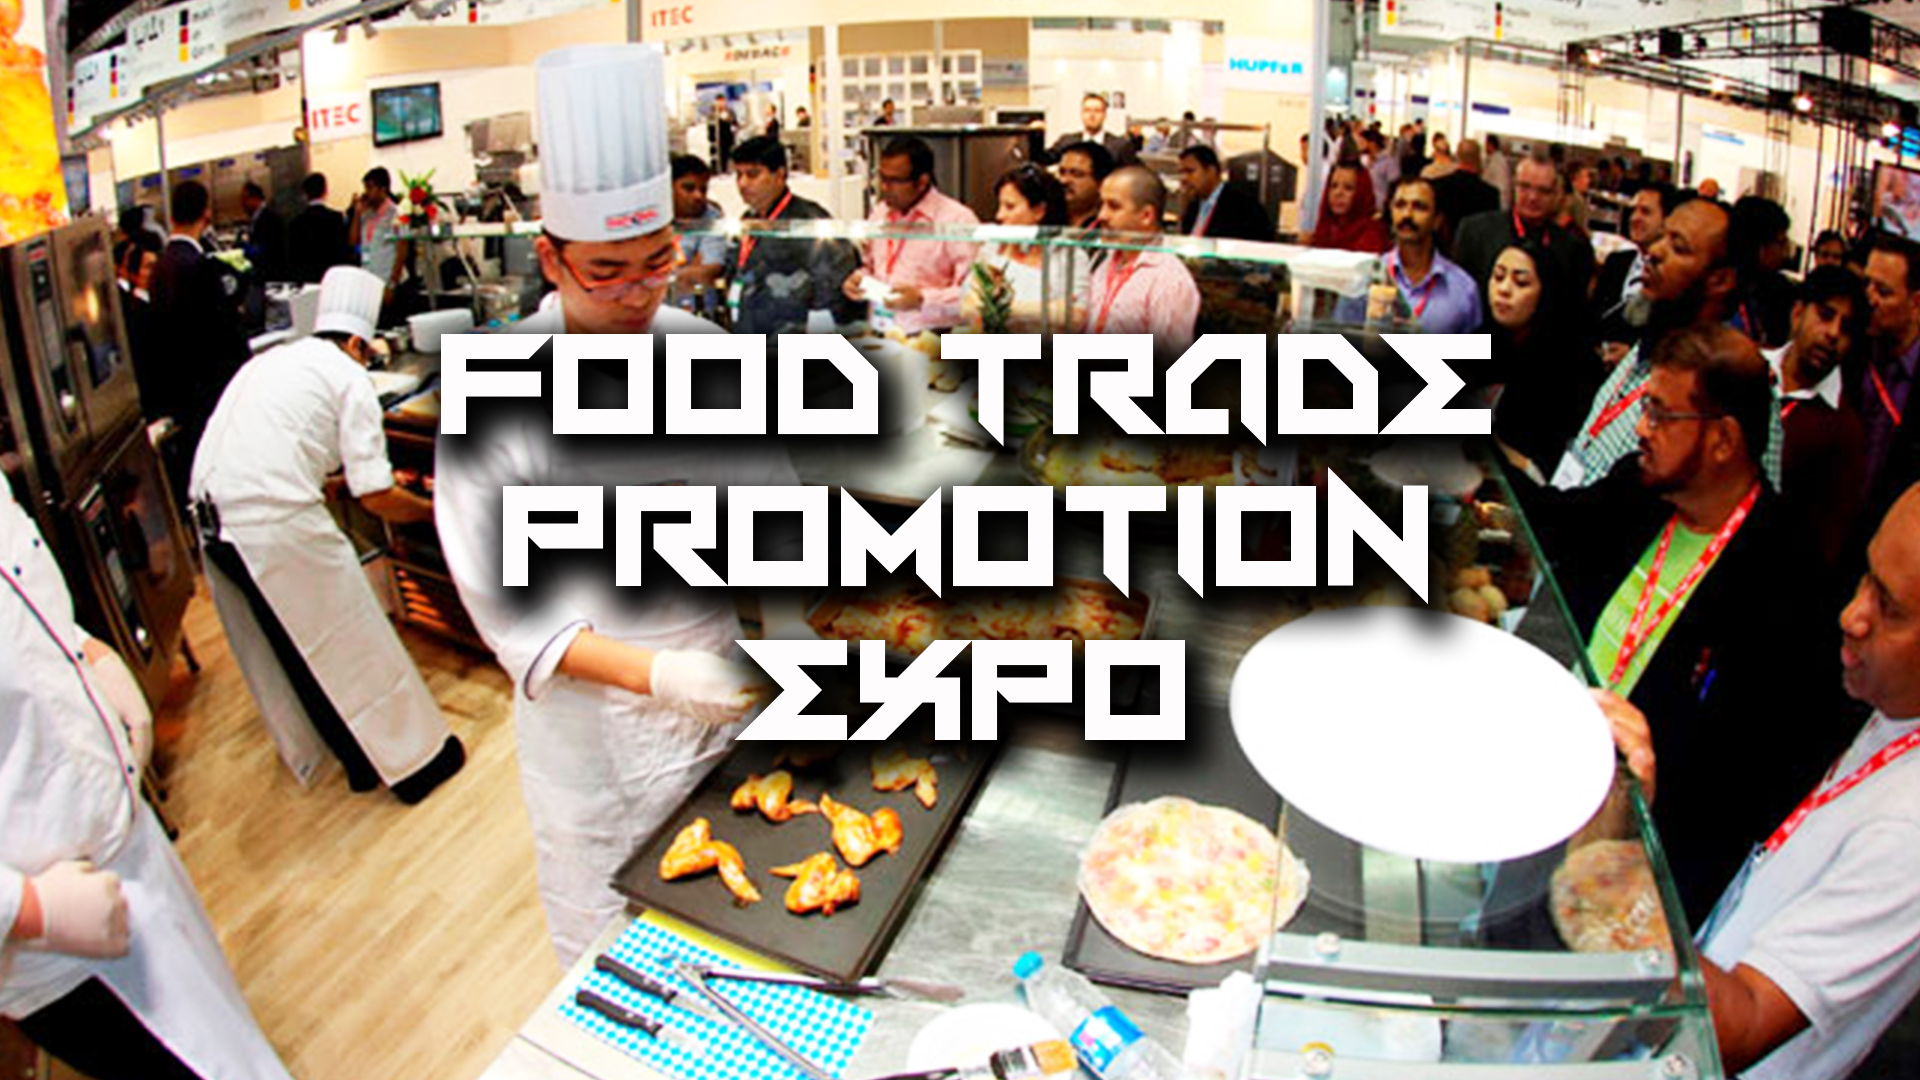 The arena provides food trade information showcase and product promotions for those who are and will be venturing into the food & hospitality industries. Up, close and personal with some of Australia's best chefs, and gain rare insights into the latest in the world of Asian gastronomy.